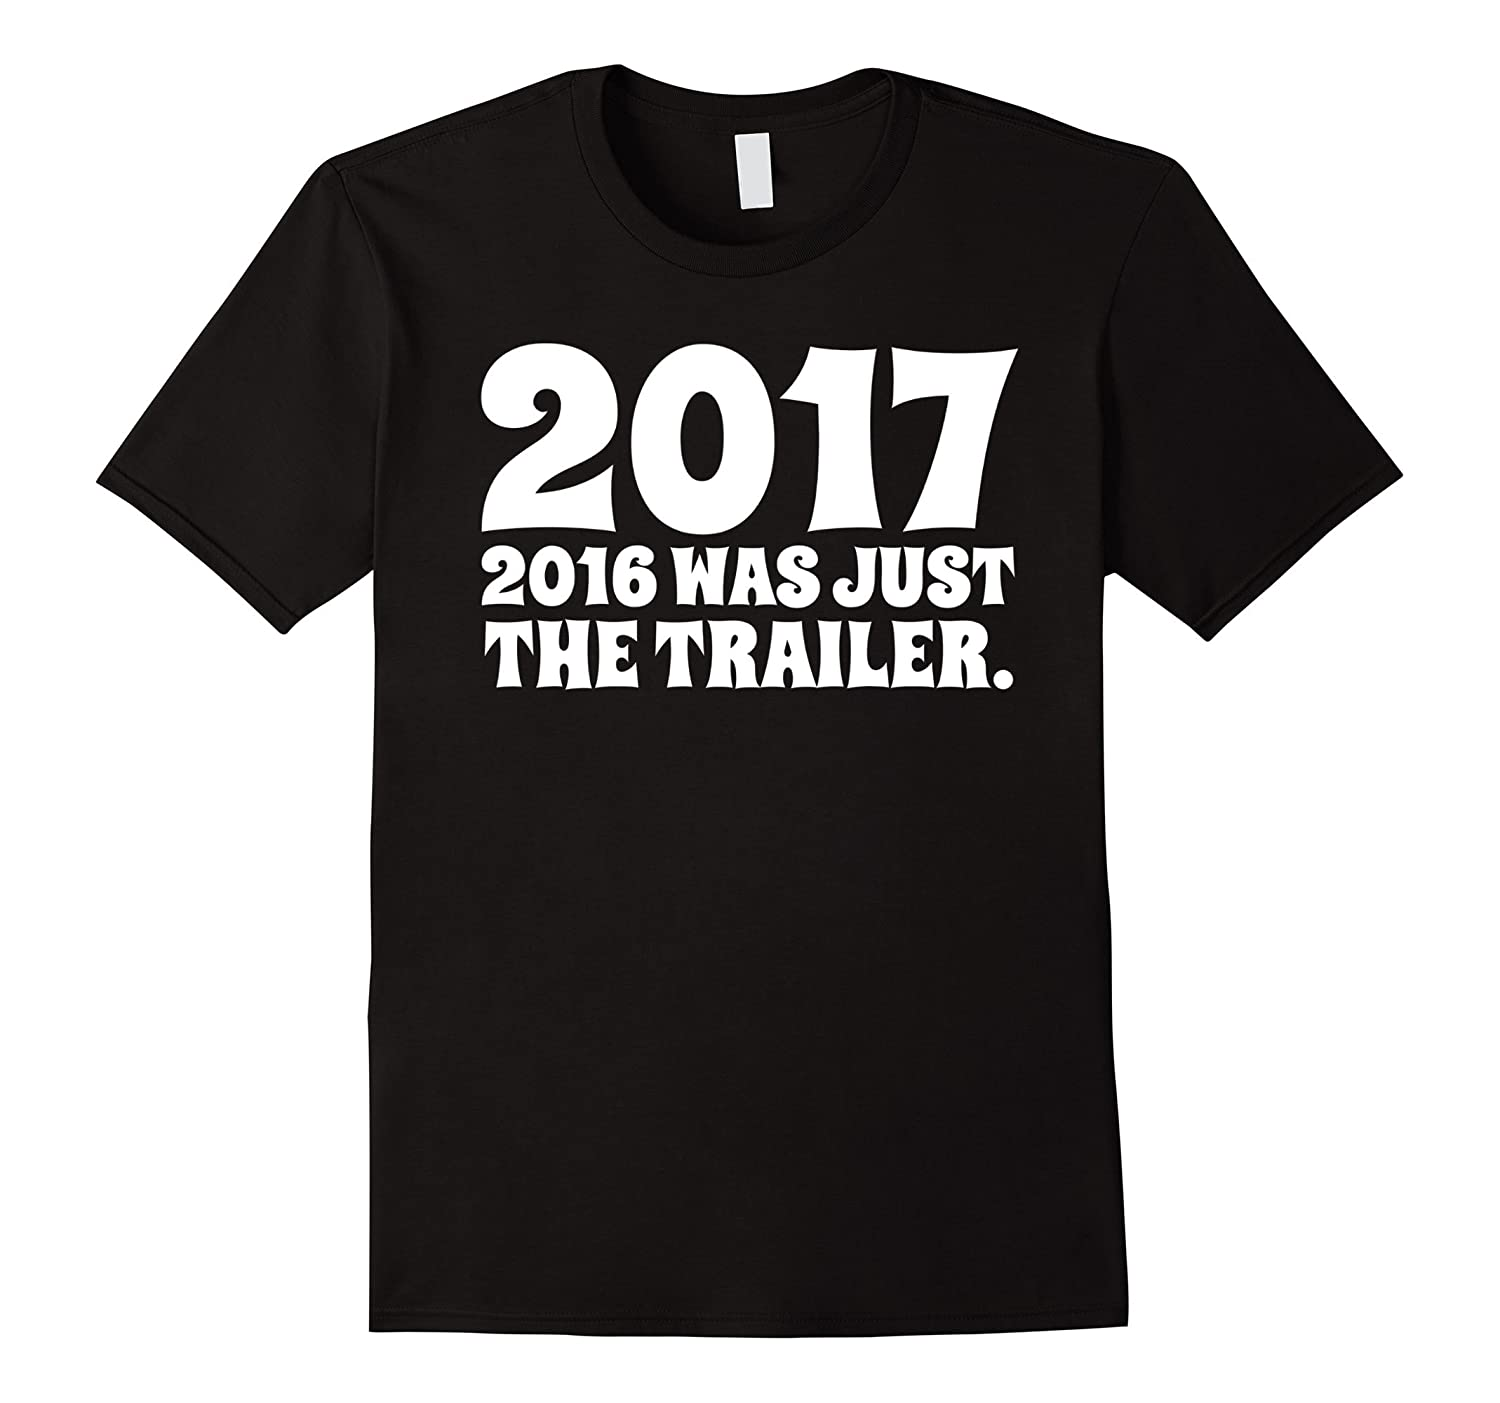 Funny New Years Eve Shirt - 2017 - 2016 Was Just the Trailer-CL